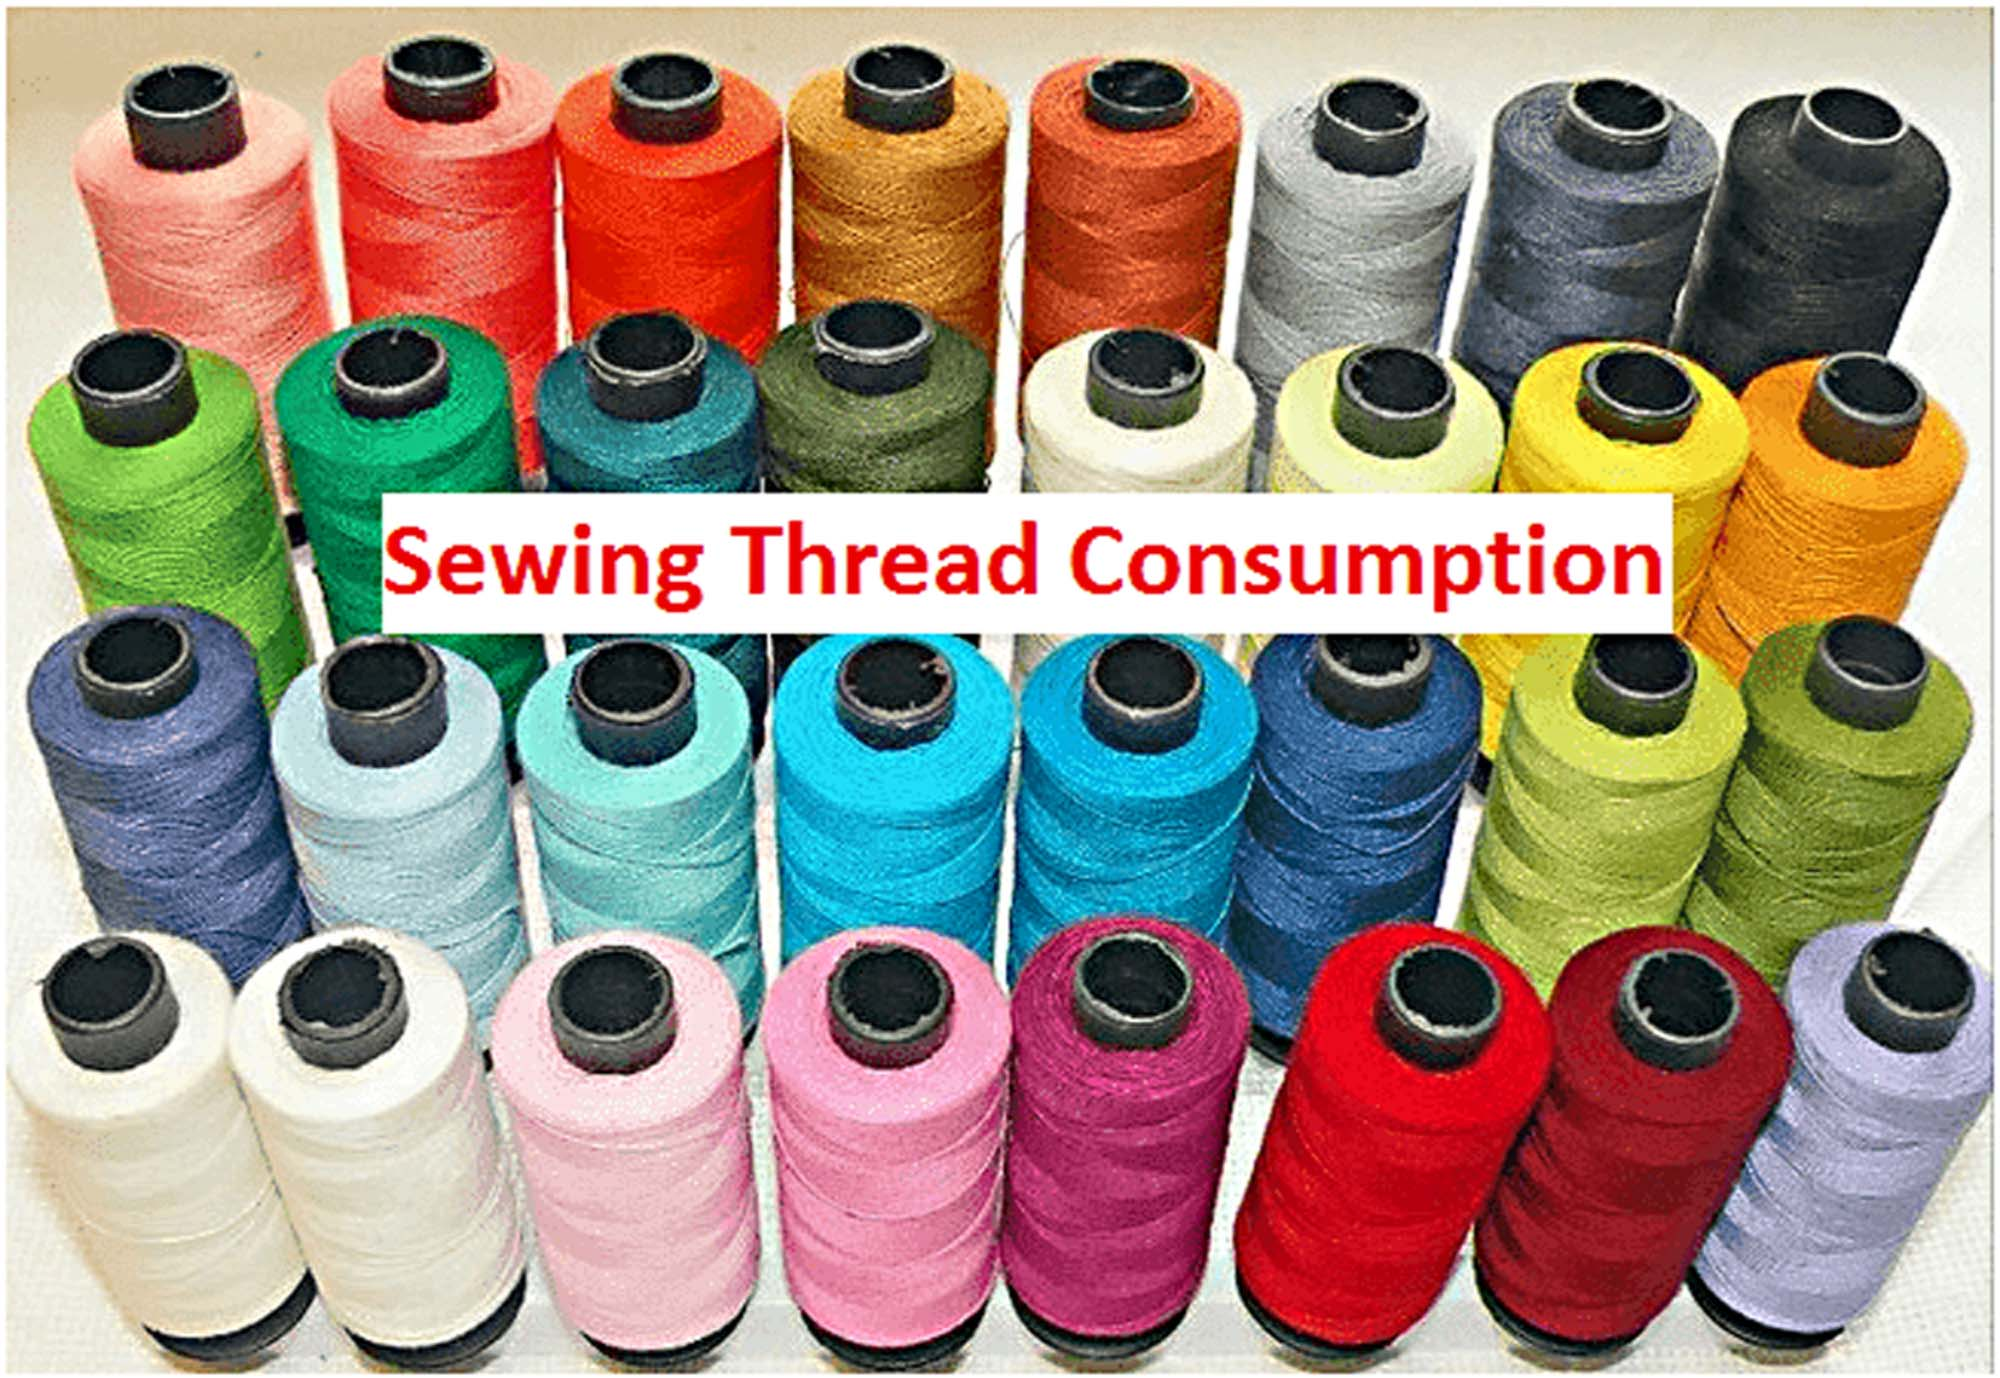 What Factors To Be Considered During Sewing Thread Consumption?